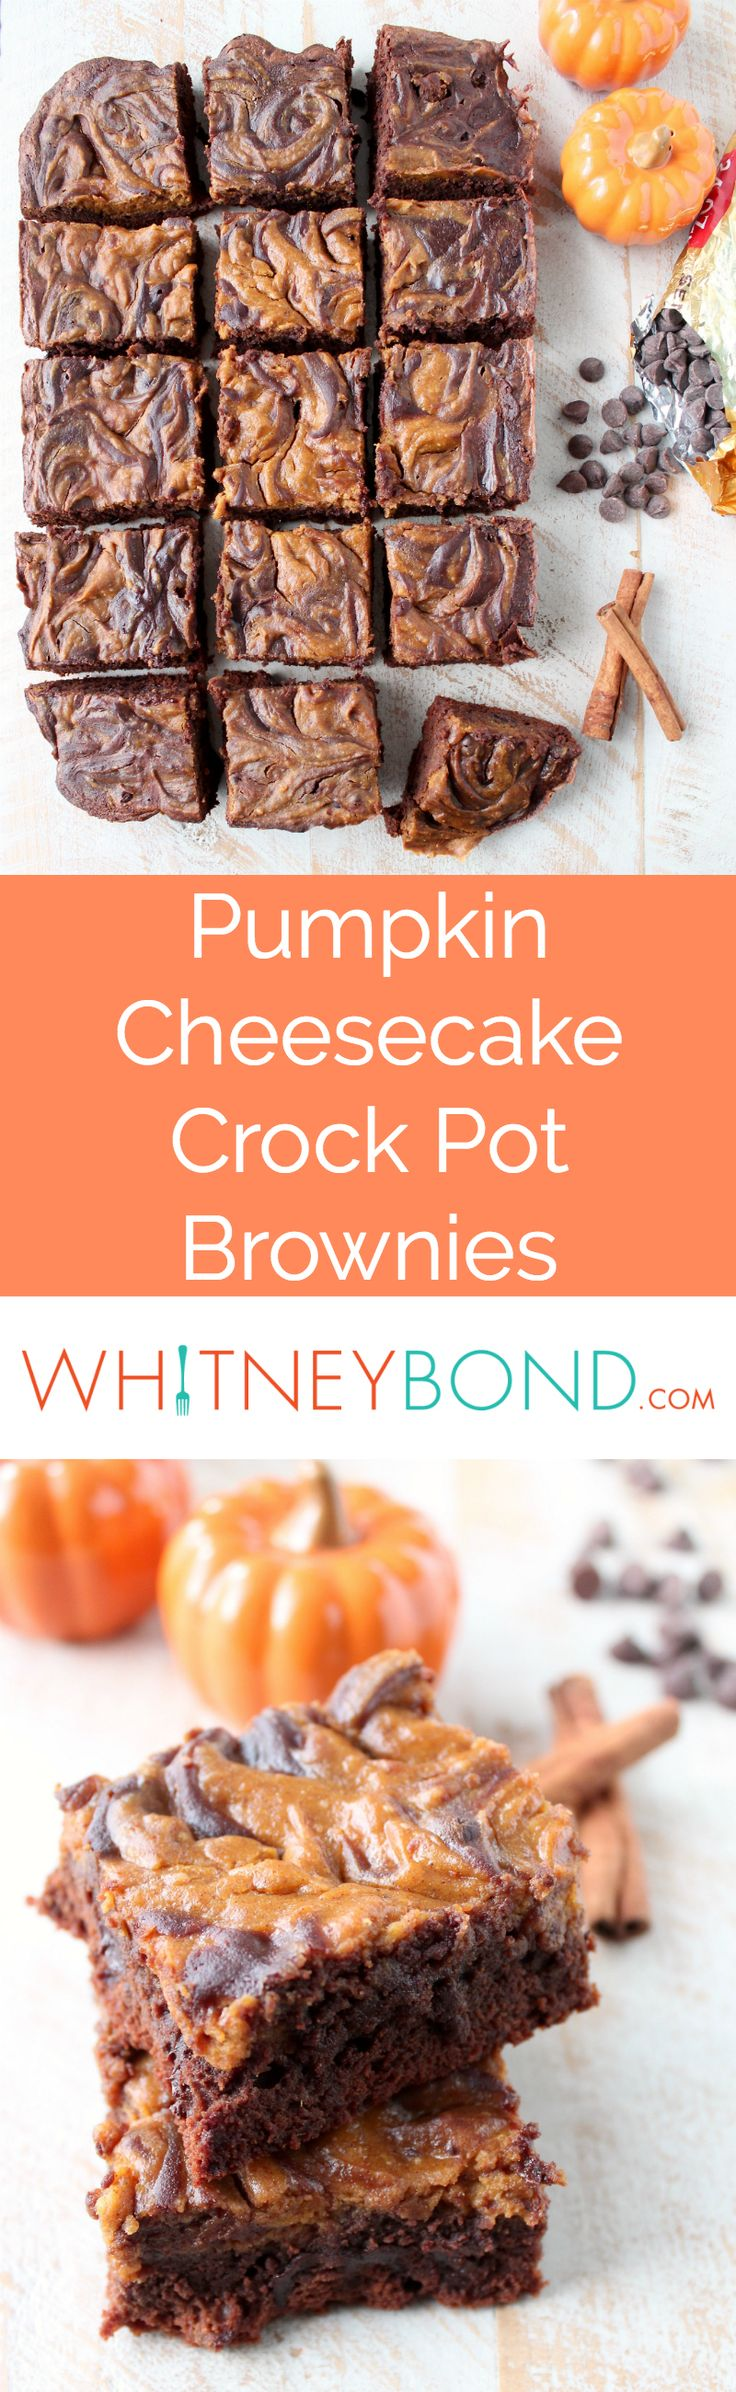 Pumpkin Cheesecake Swirled Crock Pot Brownies, a totally delicious and easy dessert for fall! @worldmarket is the perfect place to pick up cinnamon, nutmeg and Ghirardelli chocolate chips and cocoa for this recipe!